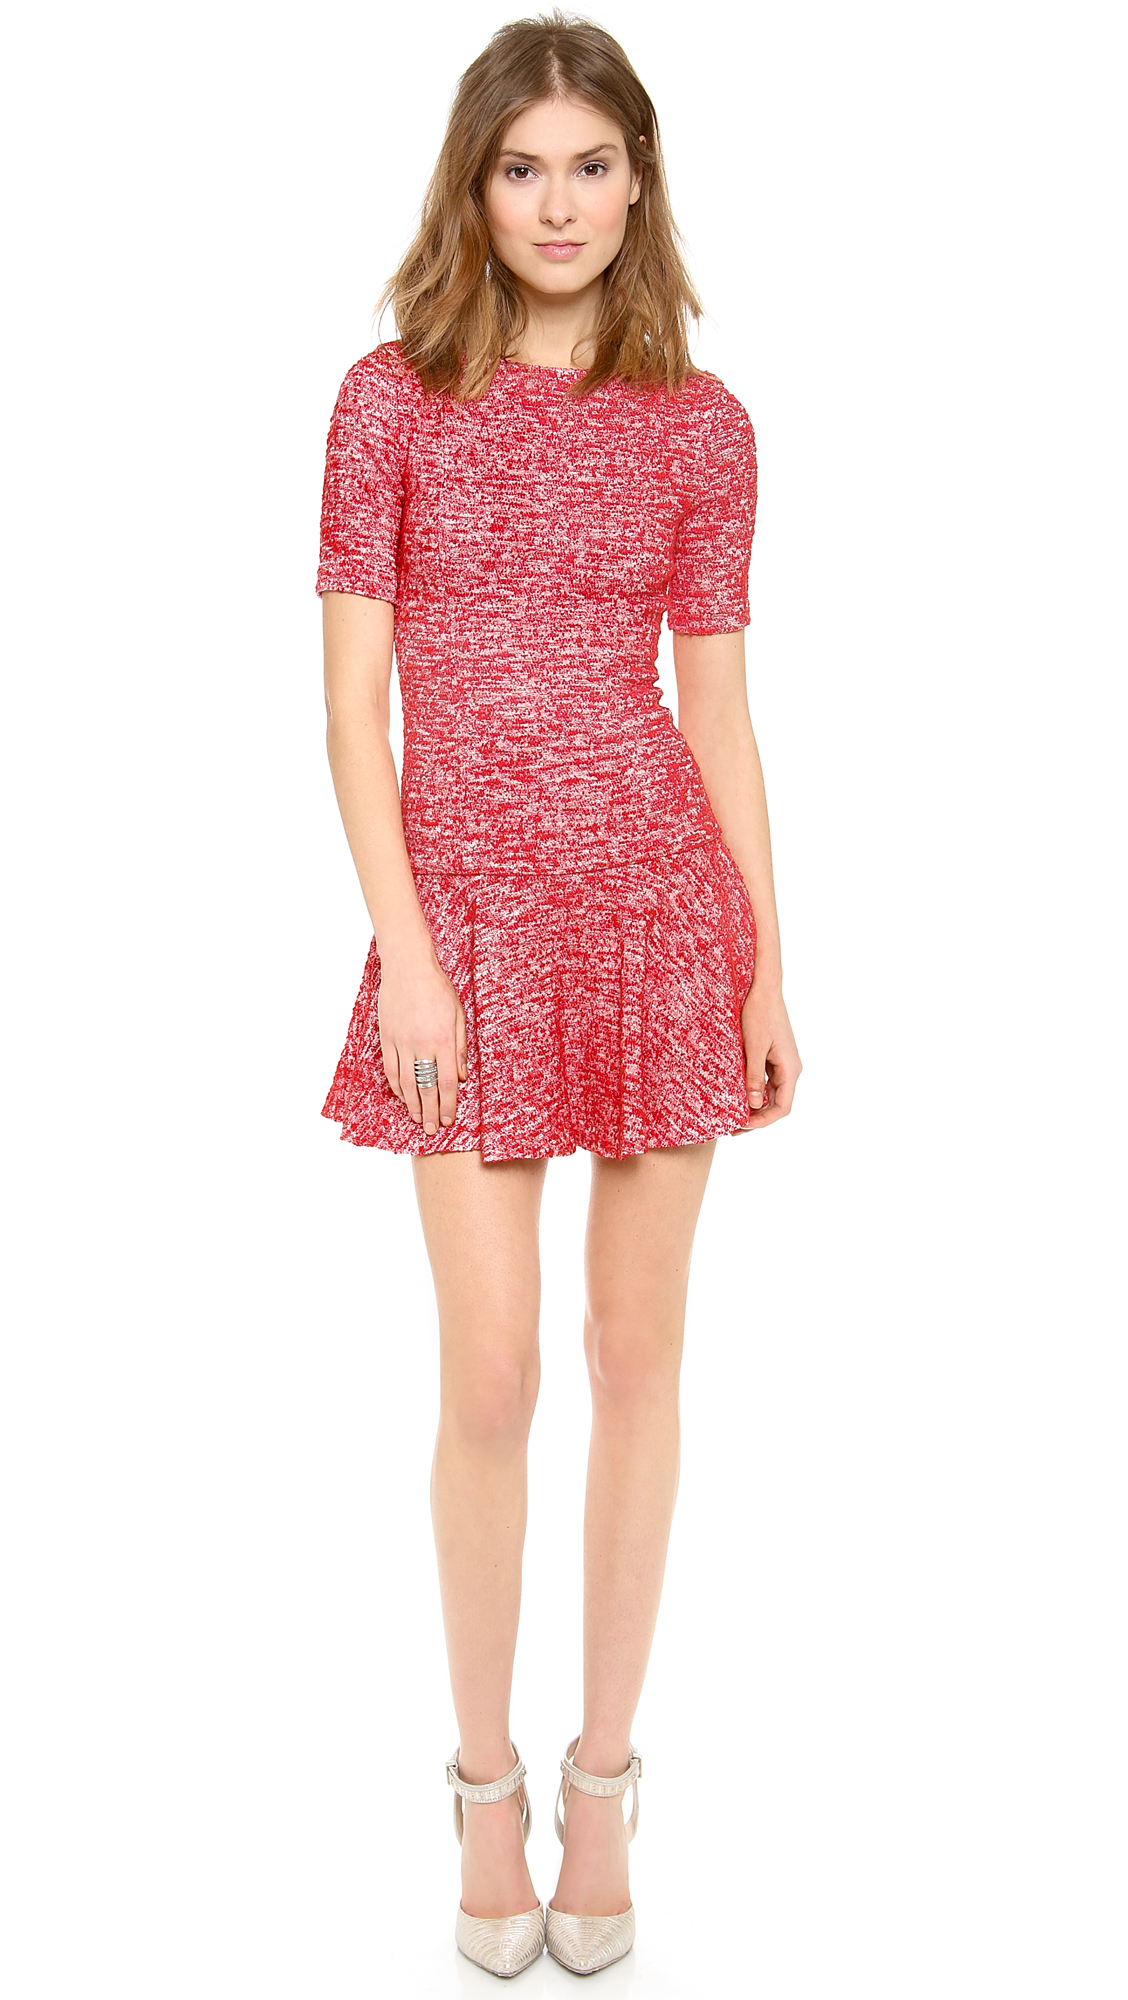 alice + olivia Perry 3/4 Sleeve Flare Dress | Fancy Friday - Valentine's Day Dresses